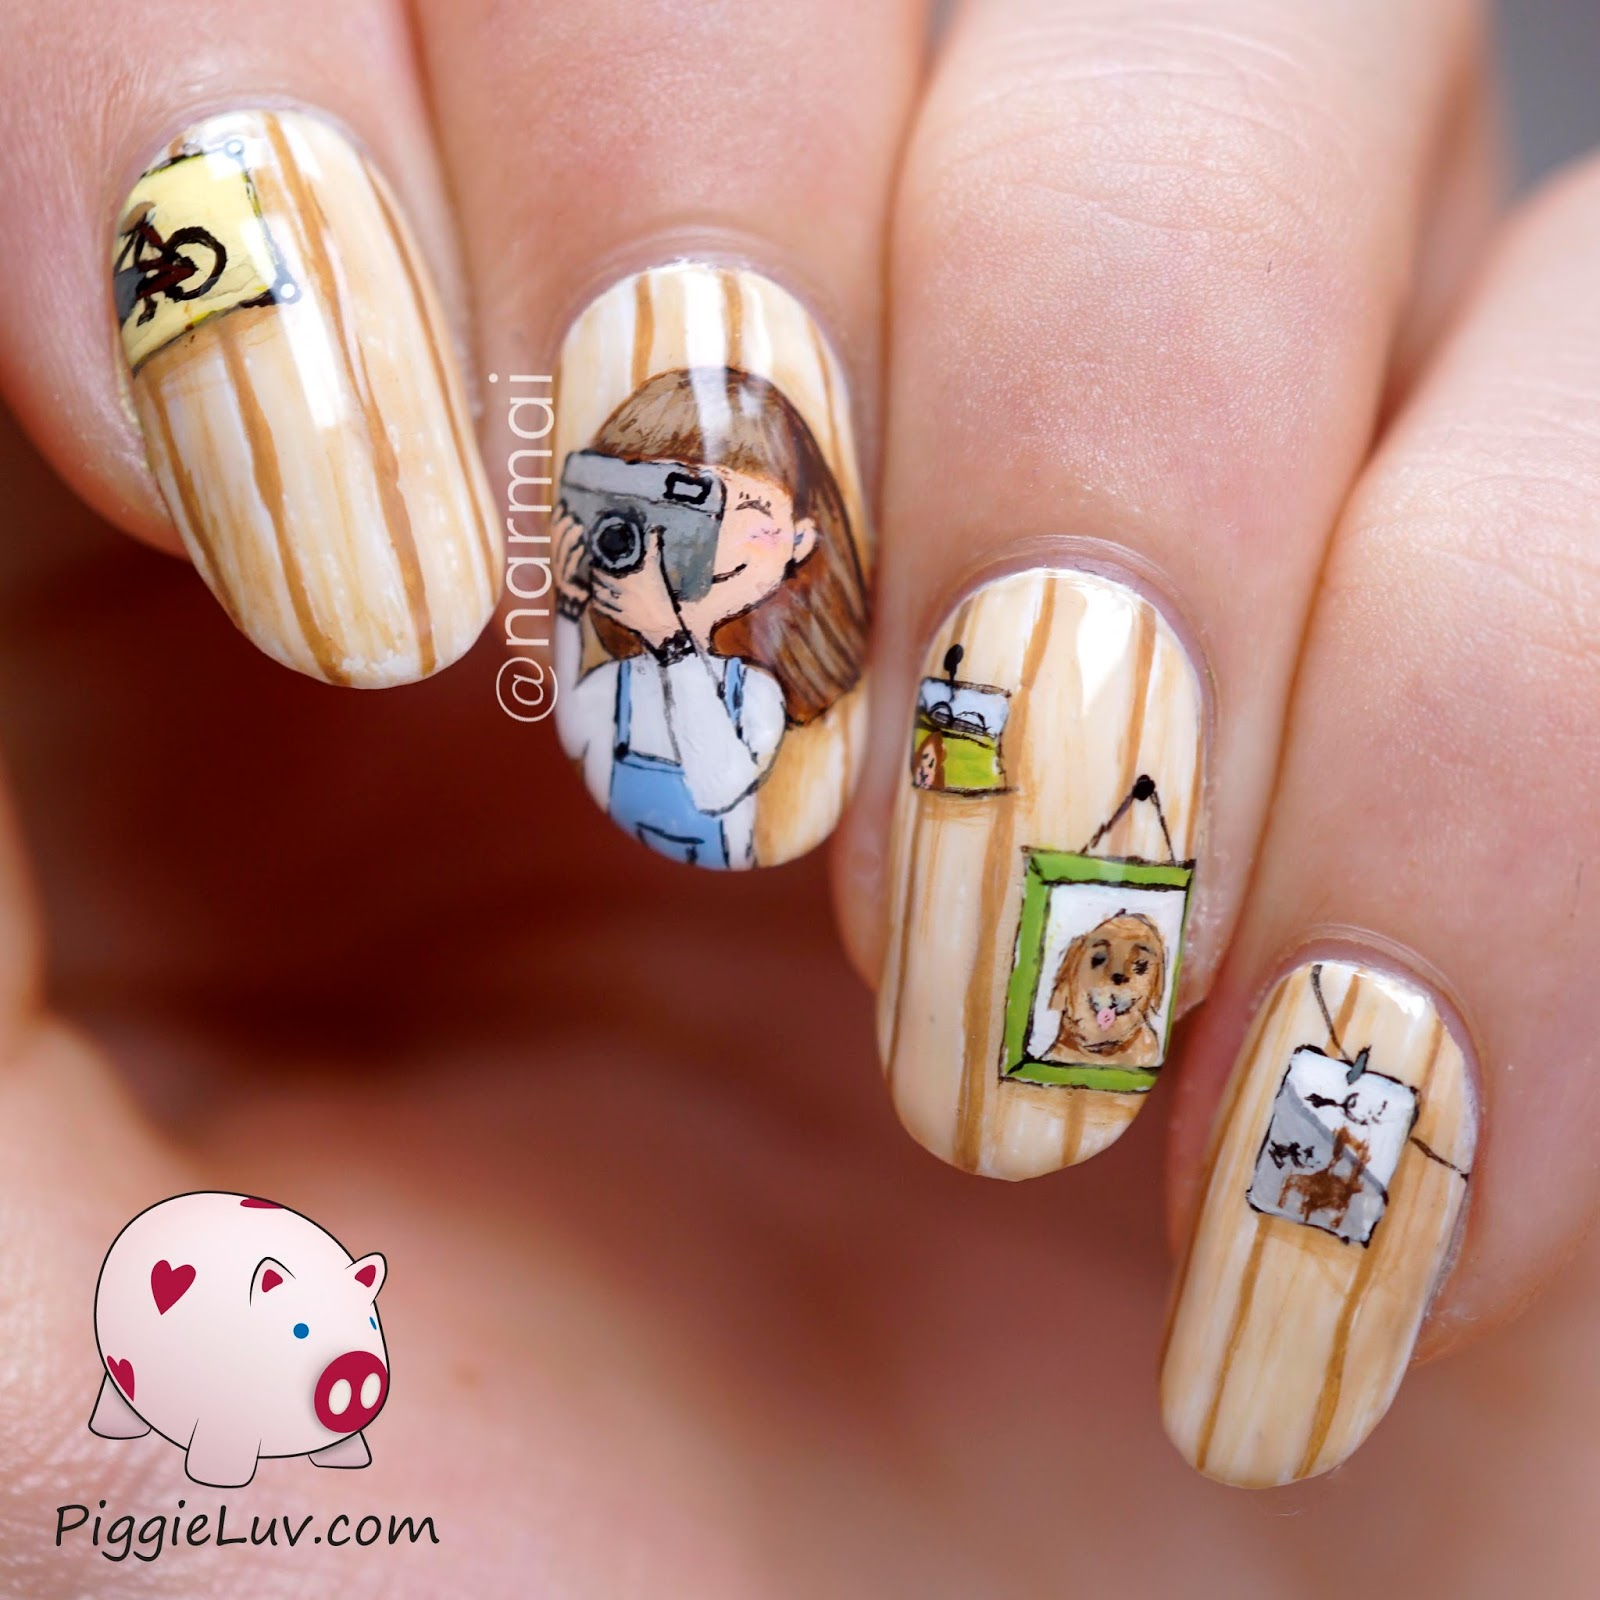 Piggieluv the little photographer nail art i started with opi alpine snow for the base and went from there i only used acrylic paint and my basic one gold brush from christrio scotland prinsesfo Choice Image